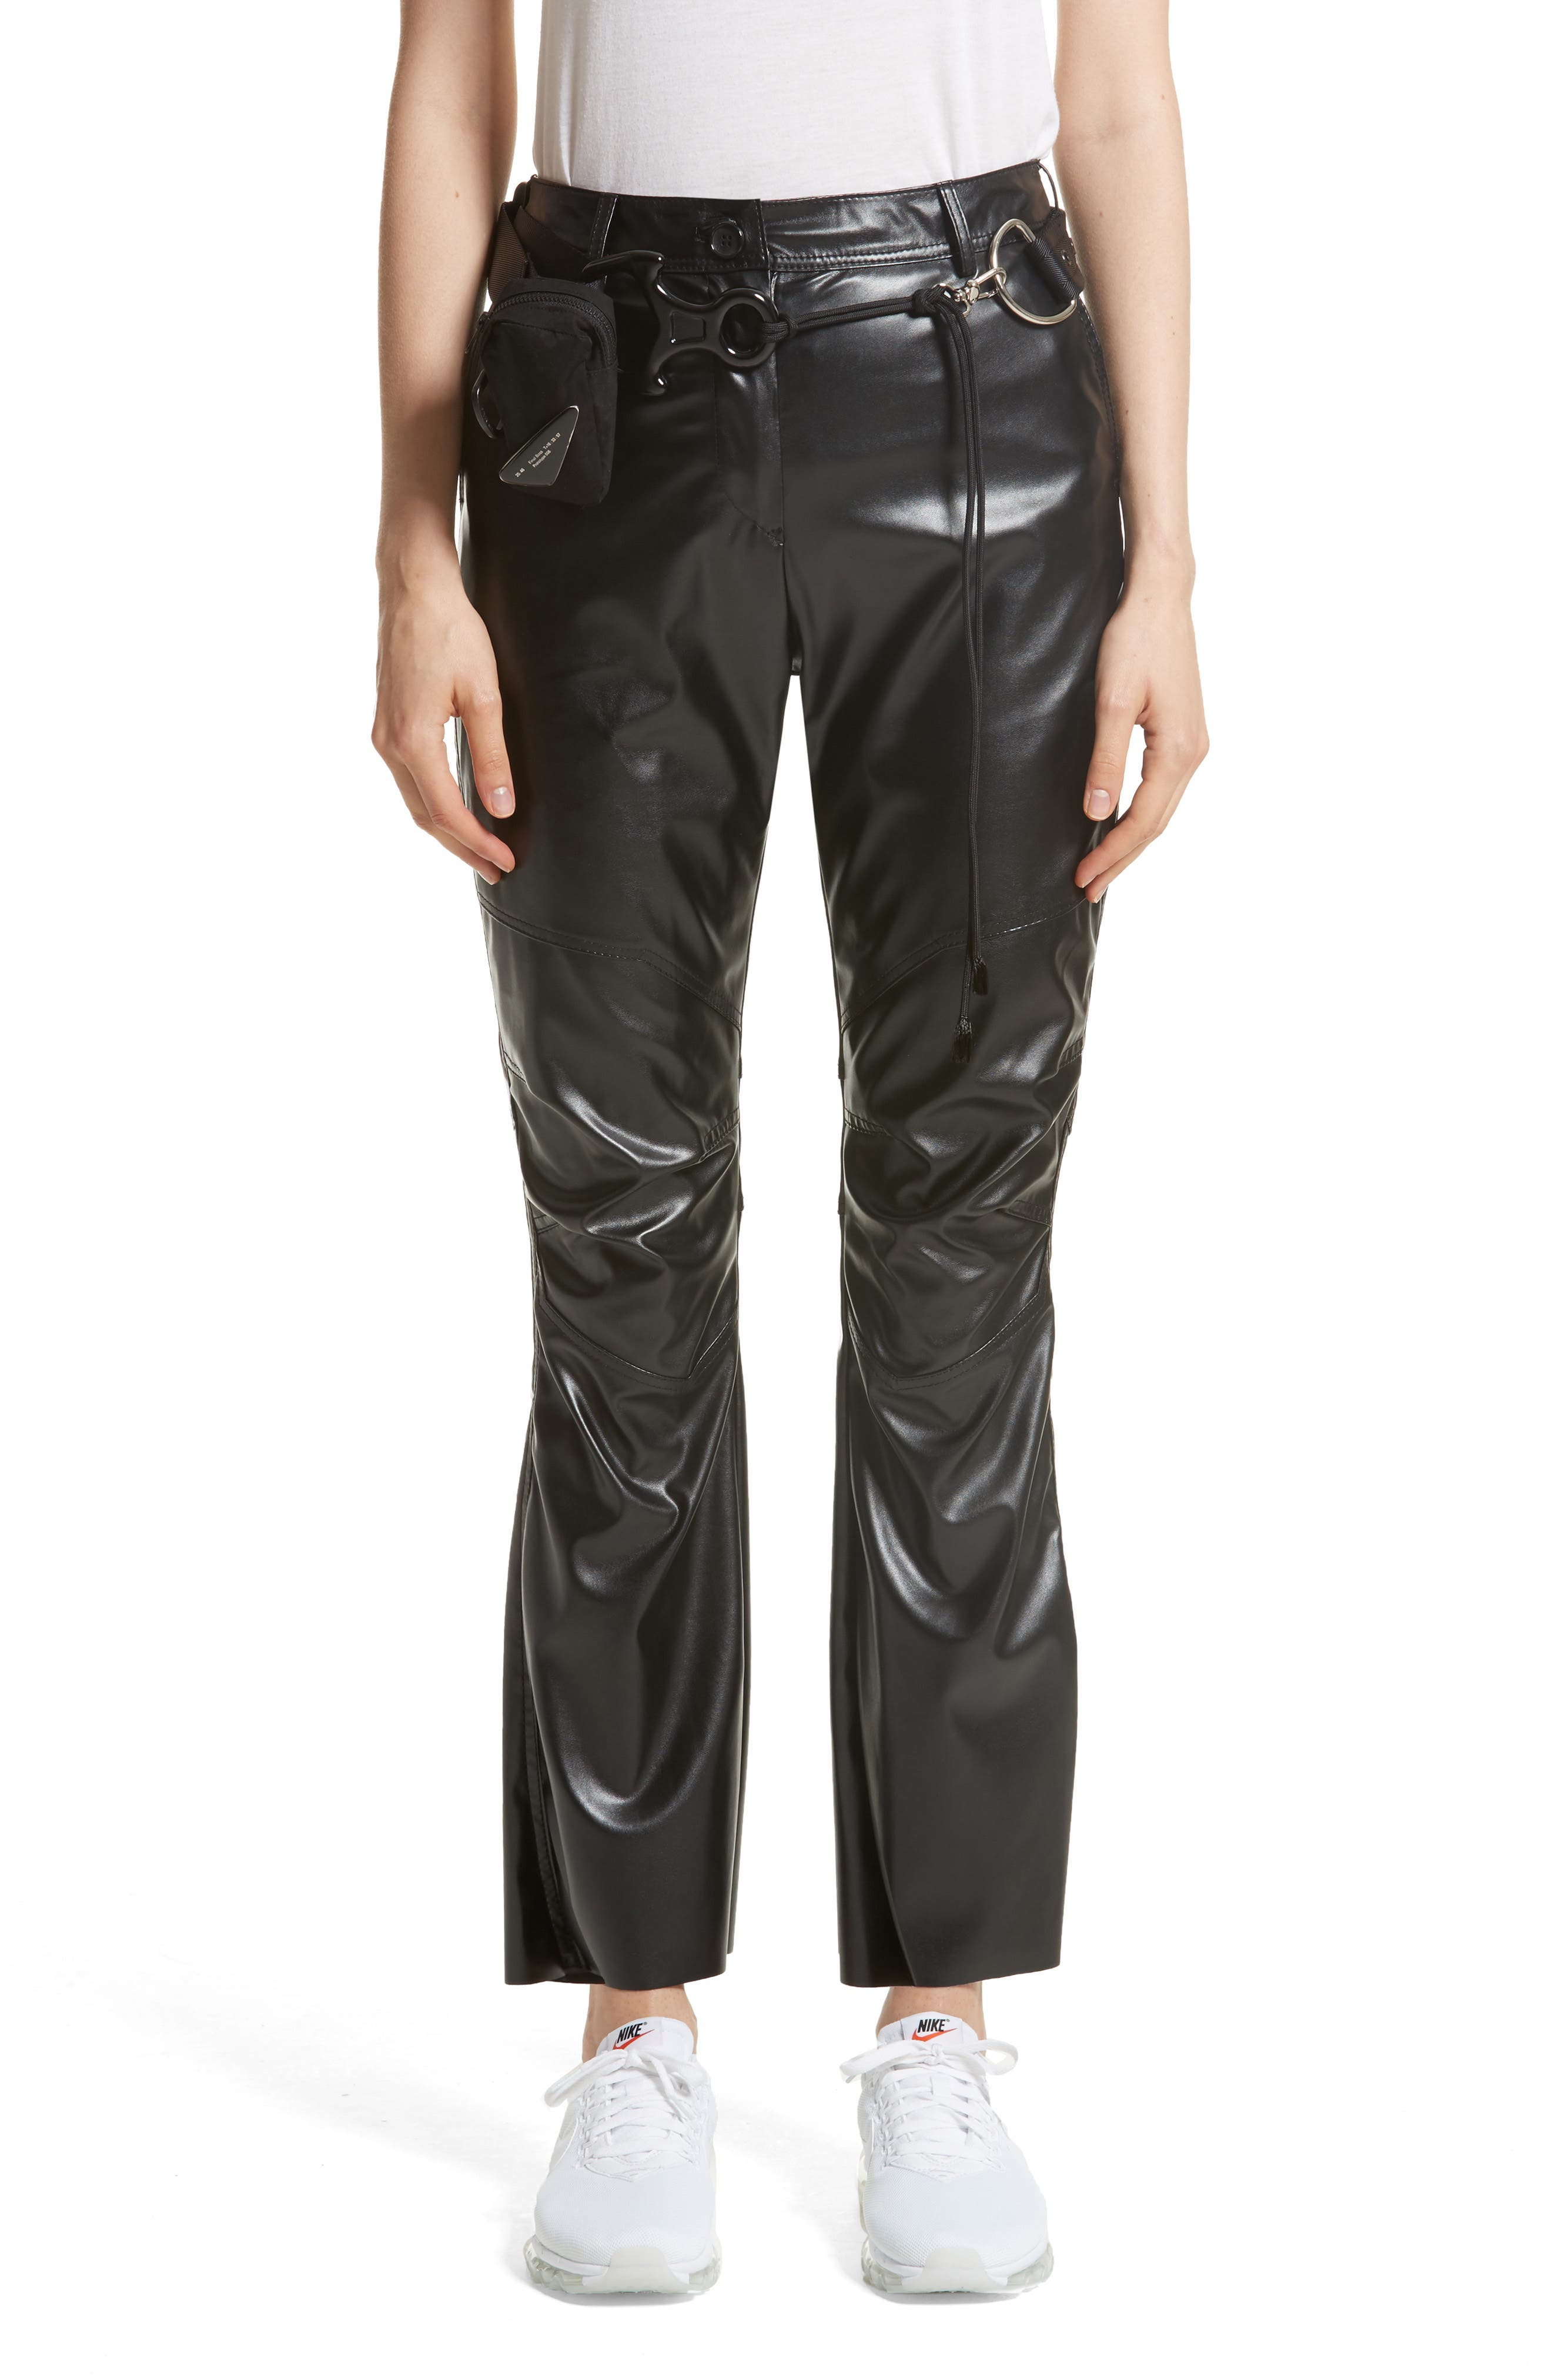 Main Image - Hyein Seo Vinyl Pants with Military Belt